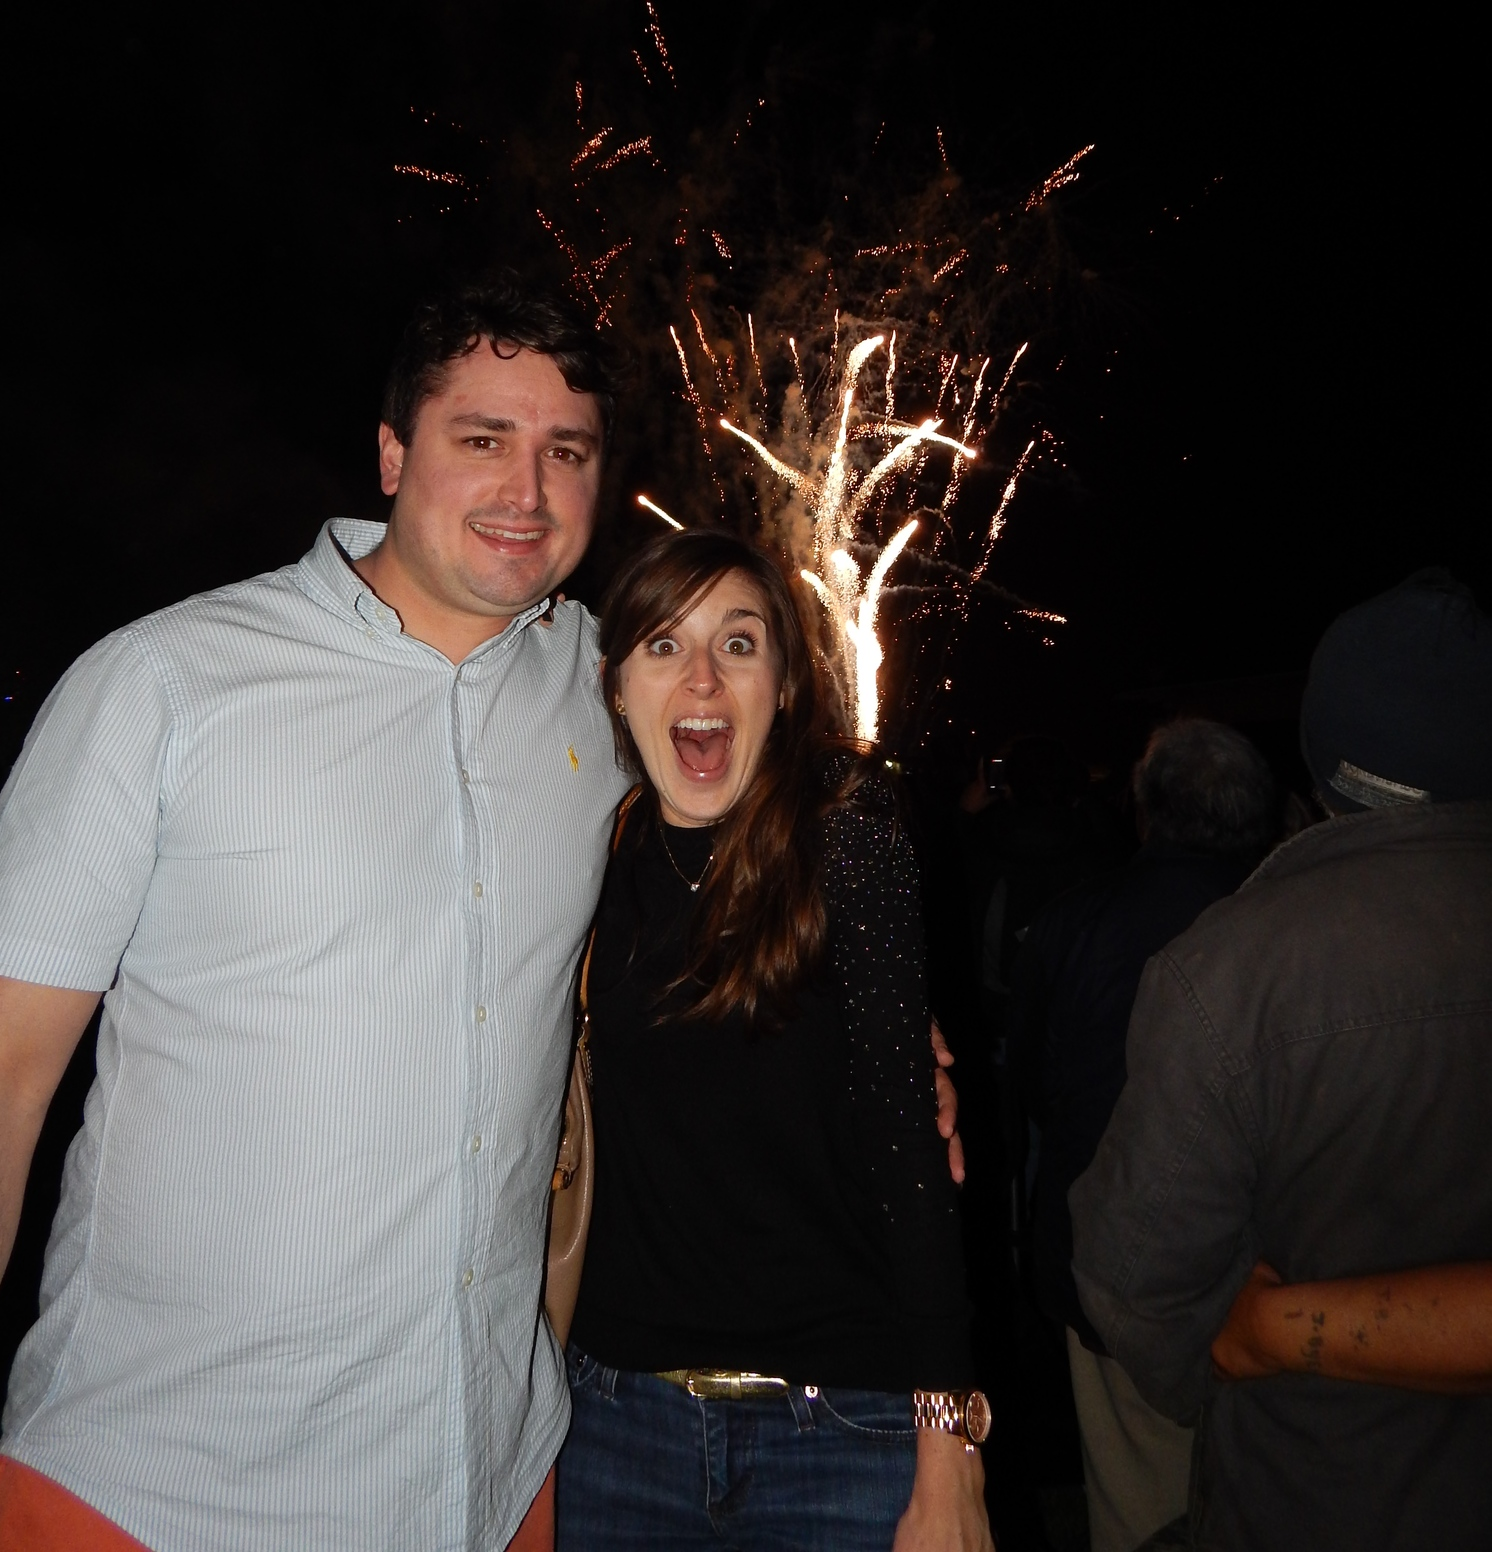 Days after arriving in New Zealand, Joe, my sister Gabrielle and I celebrated  New Year's Eve  in the Napier Sound Shell with a swing band and bag pipers under a sky of fireworks. It was a truly magical night and a great way to kick off this adventure.